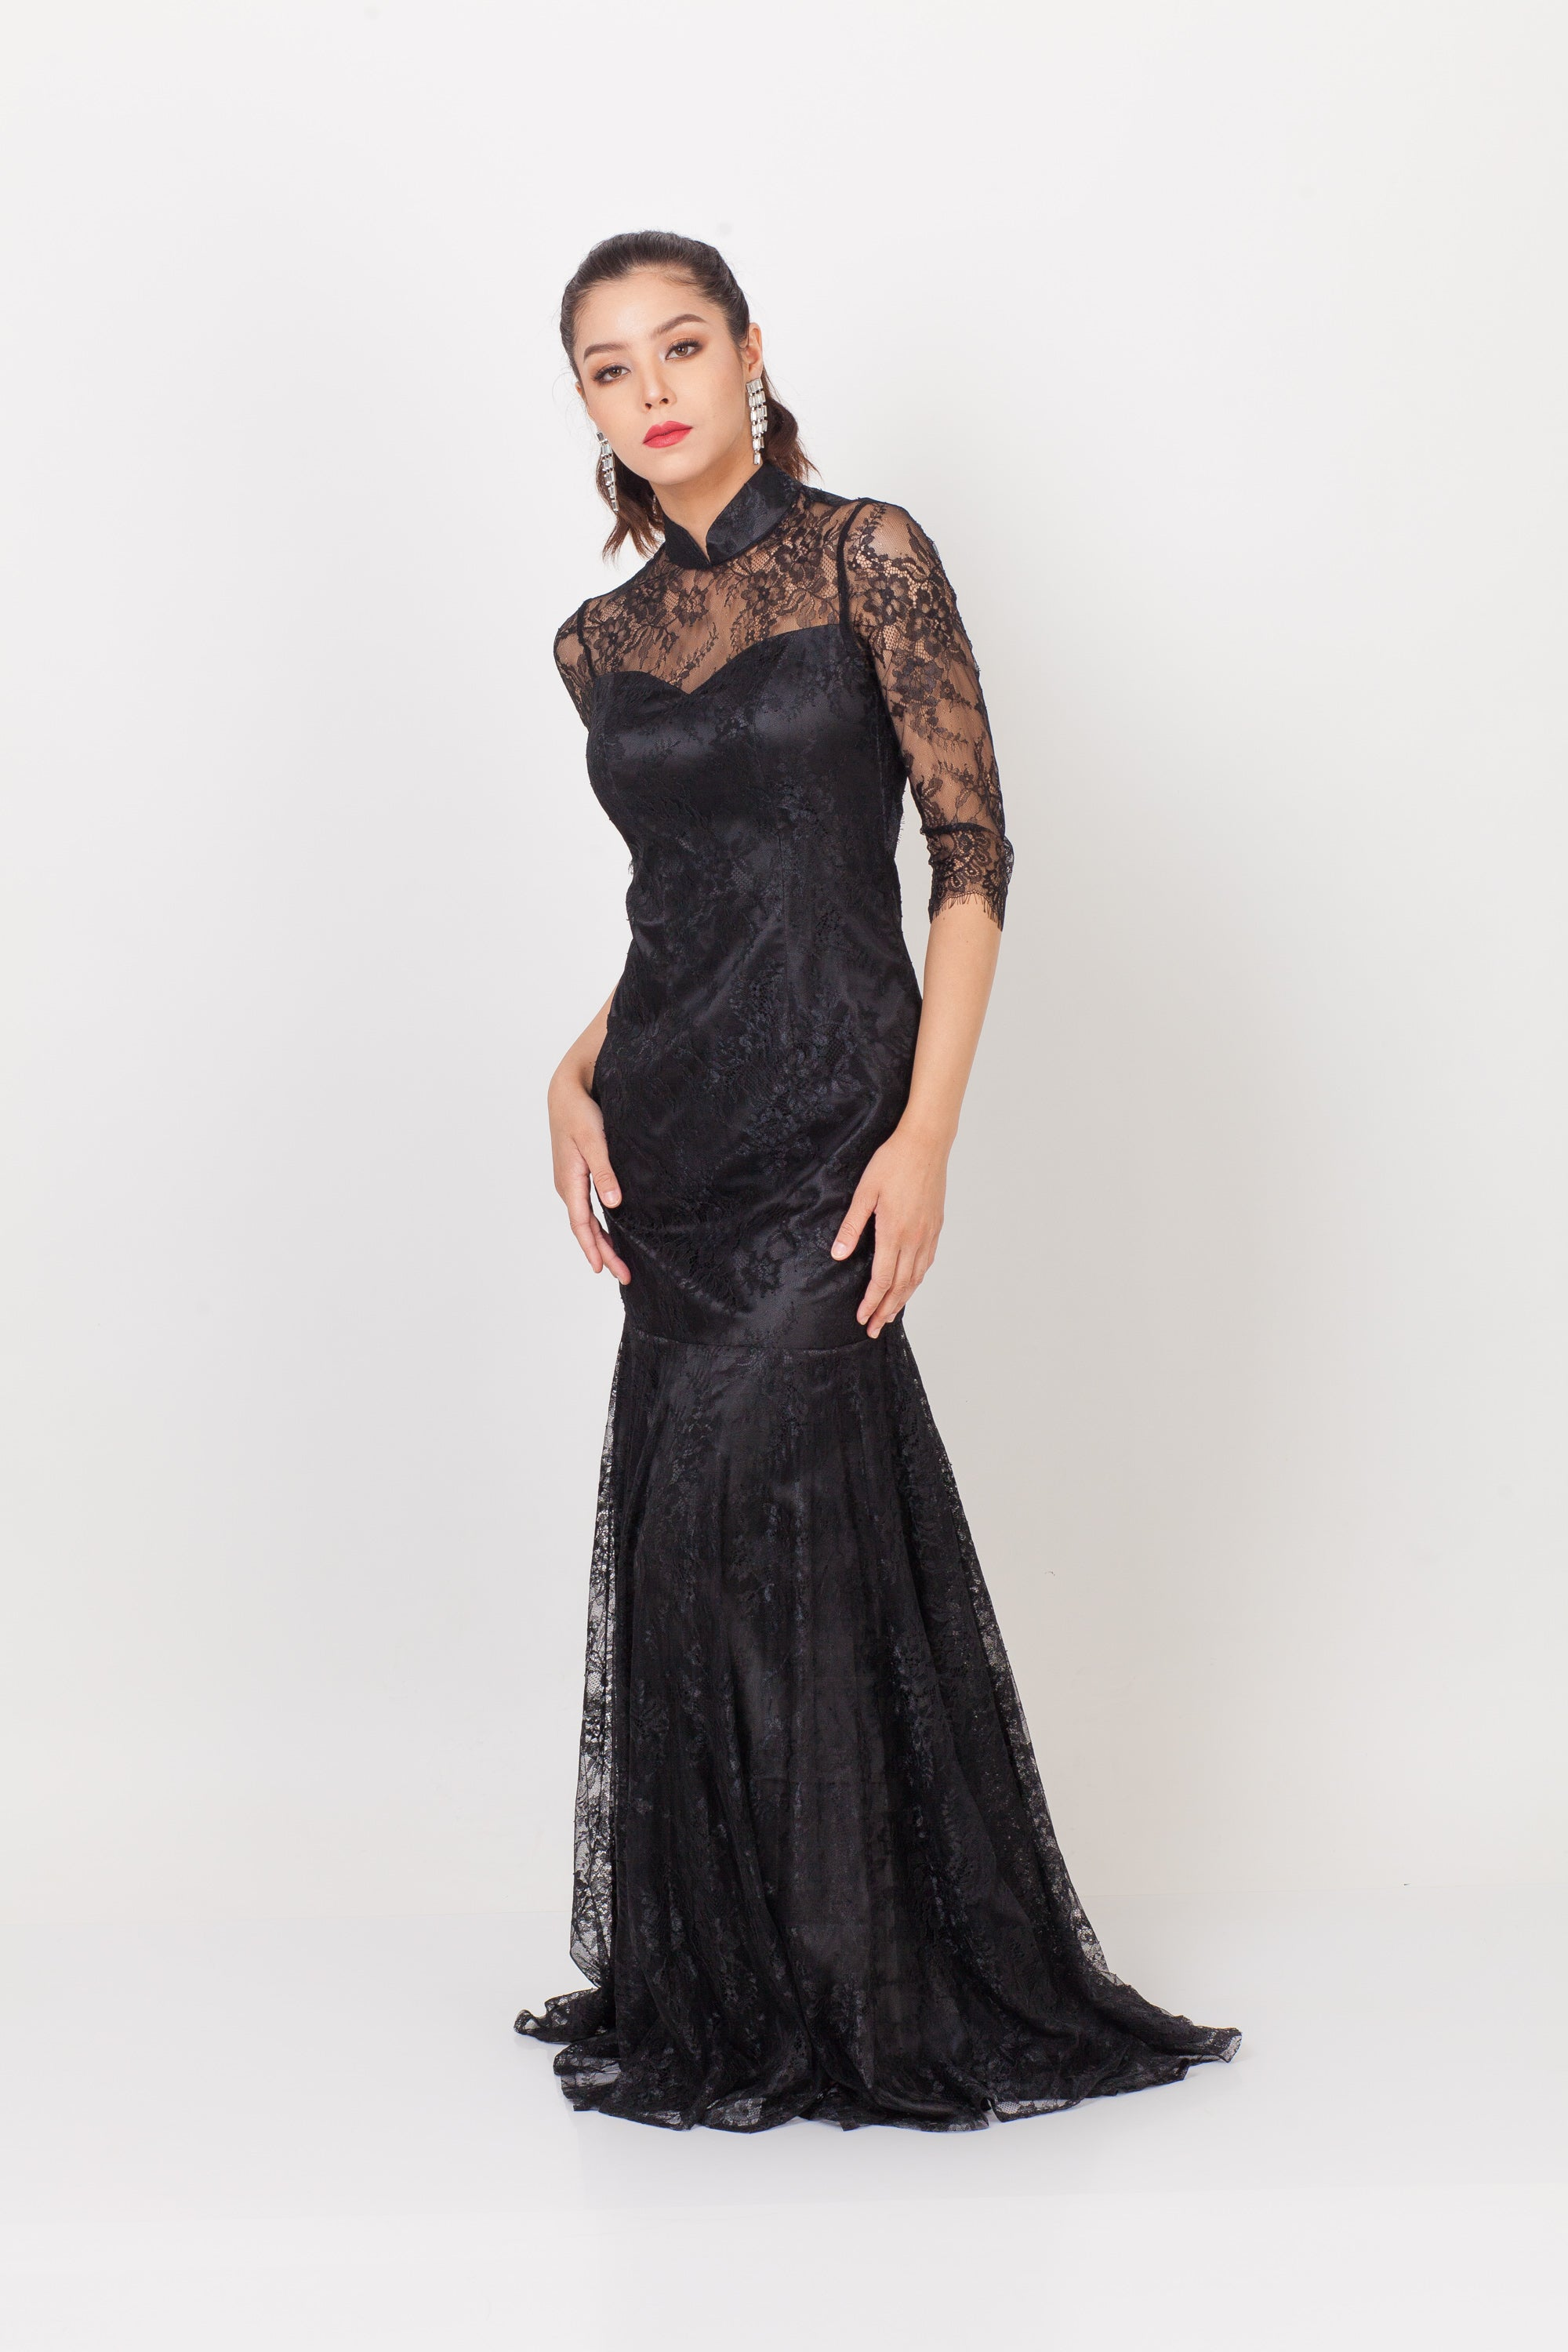 Qipology Mid Sleeves Open Back Lace Qipao Dress